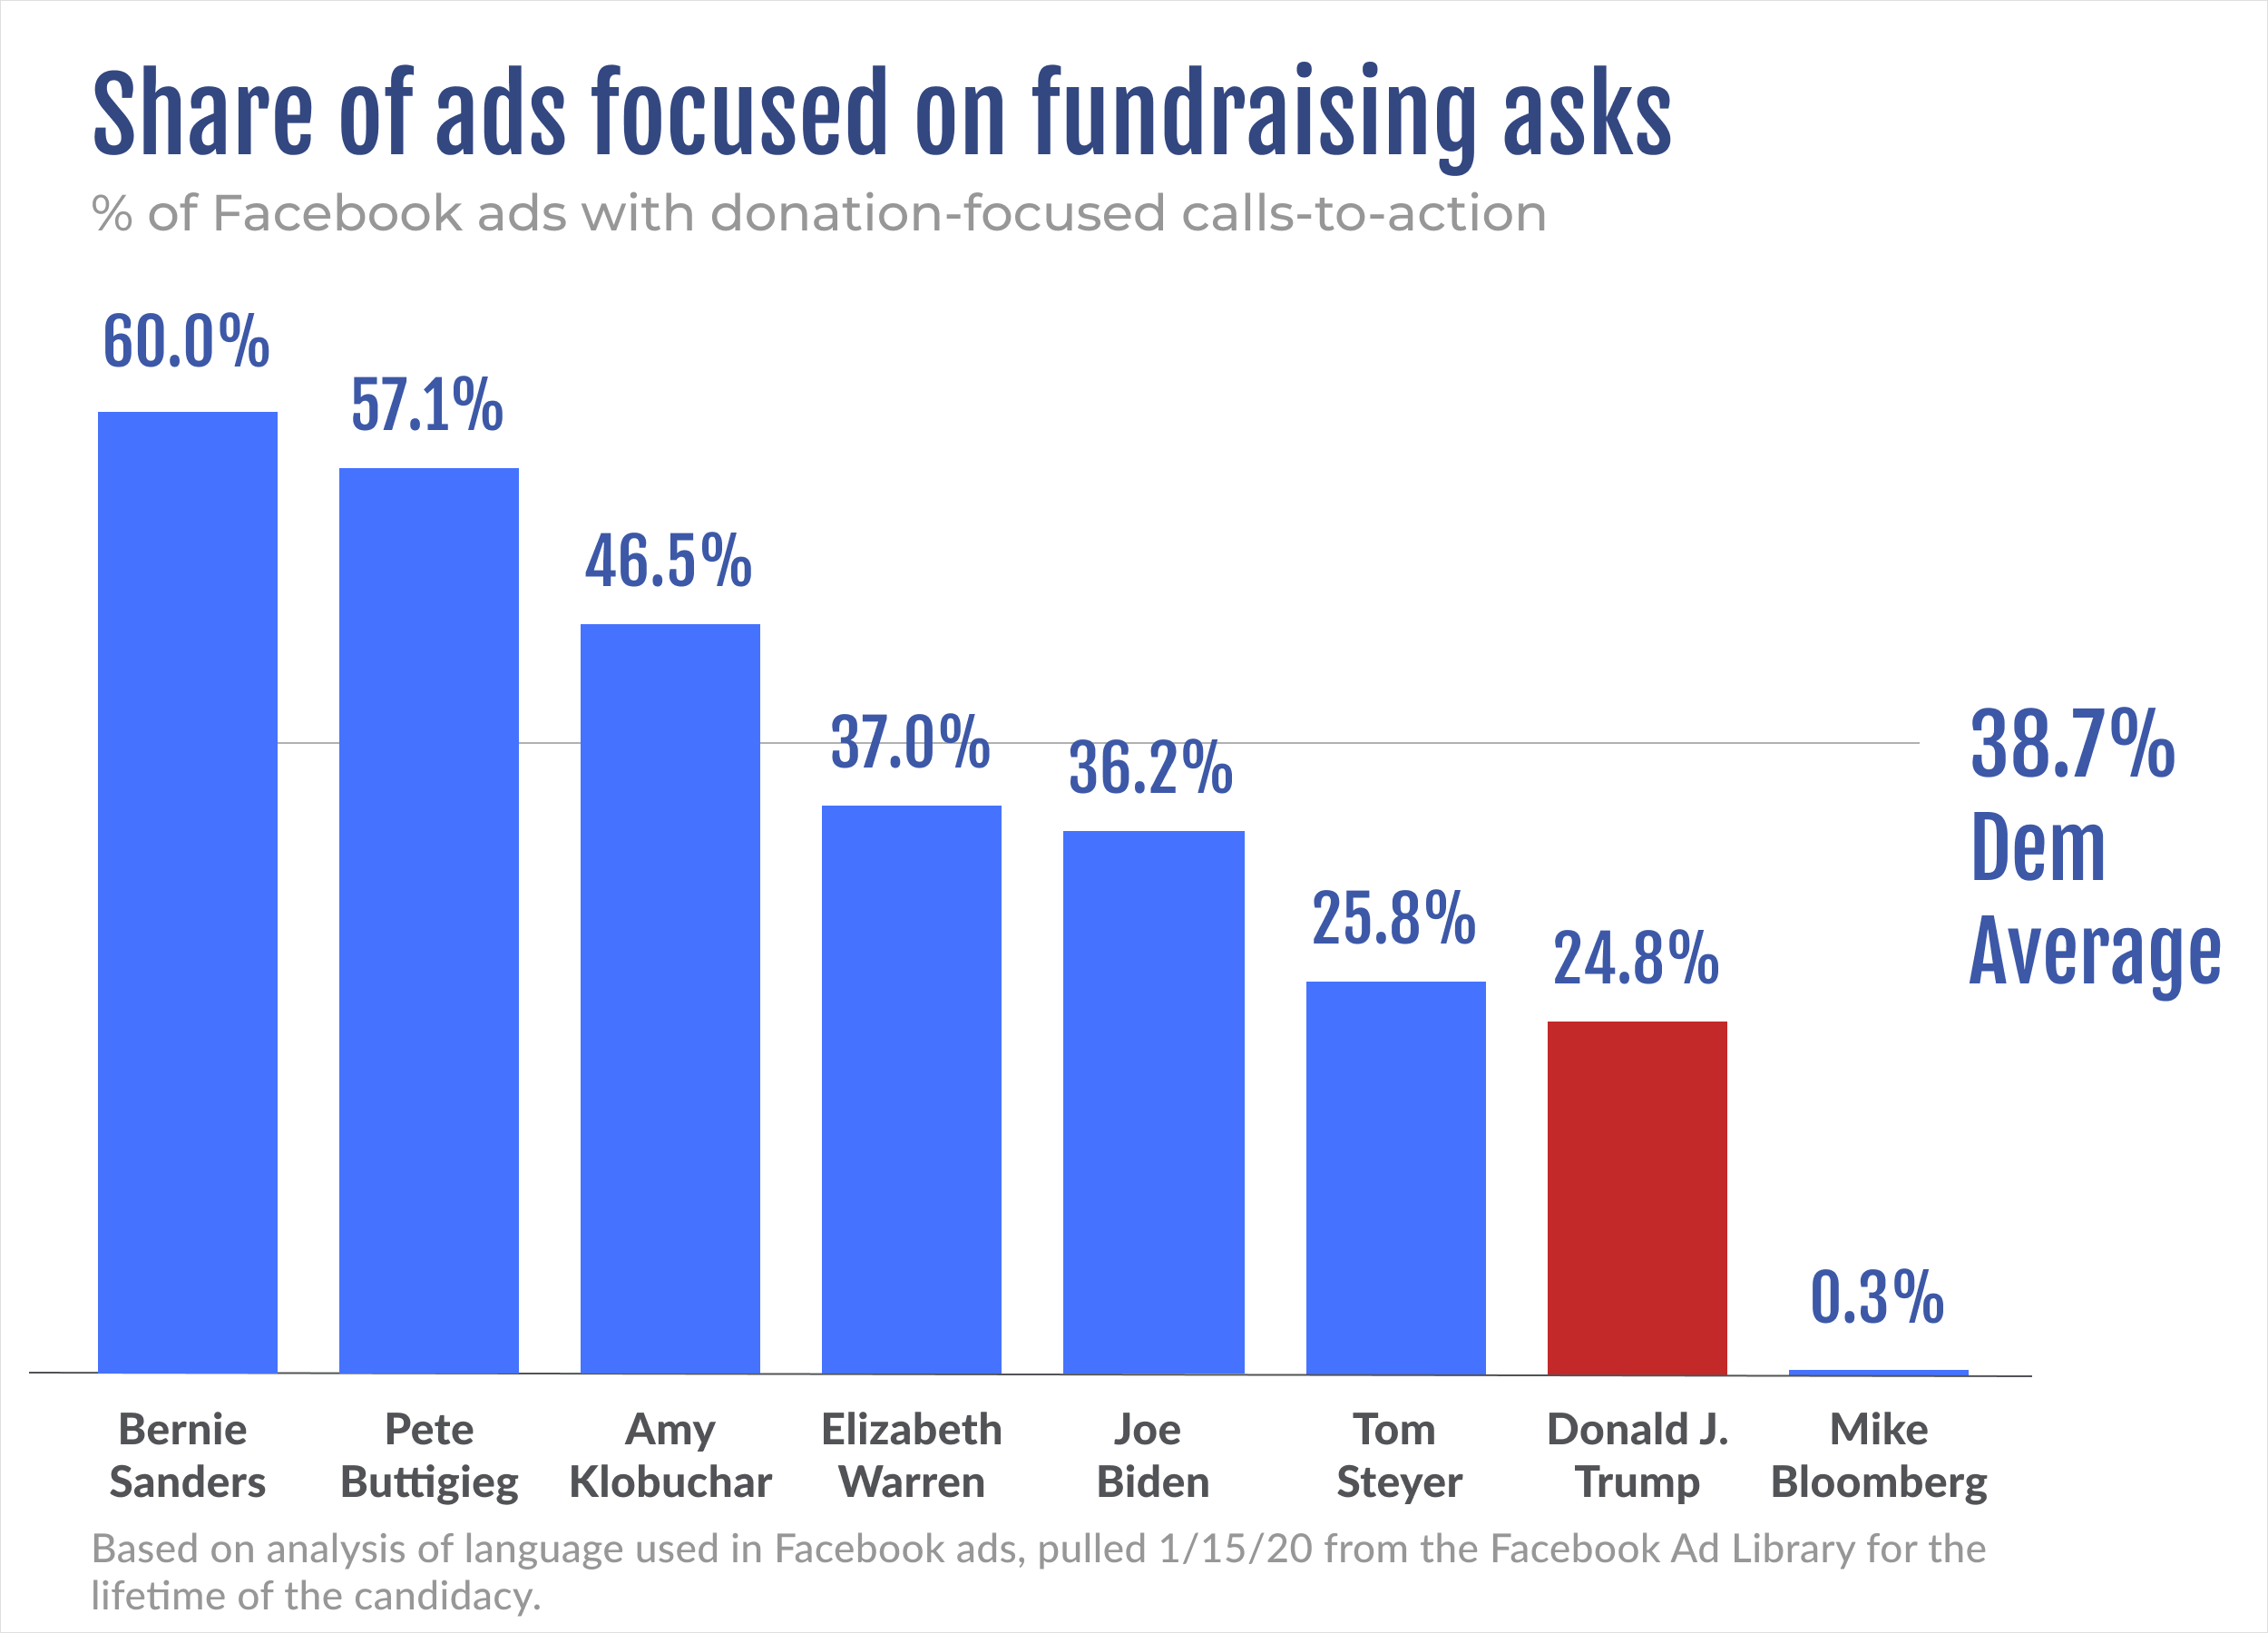 Share of ads focused on fundraising asks by candidate